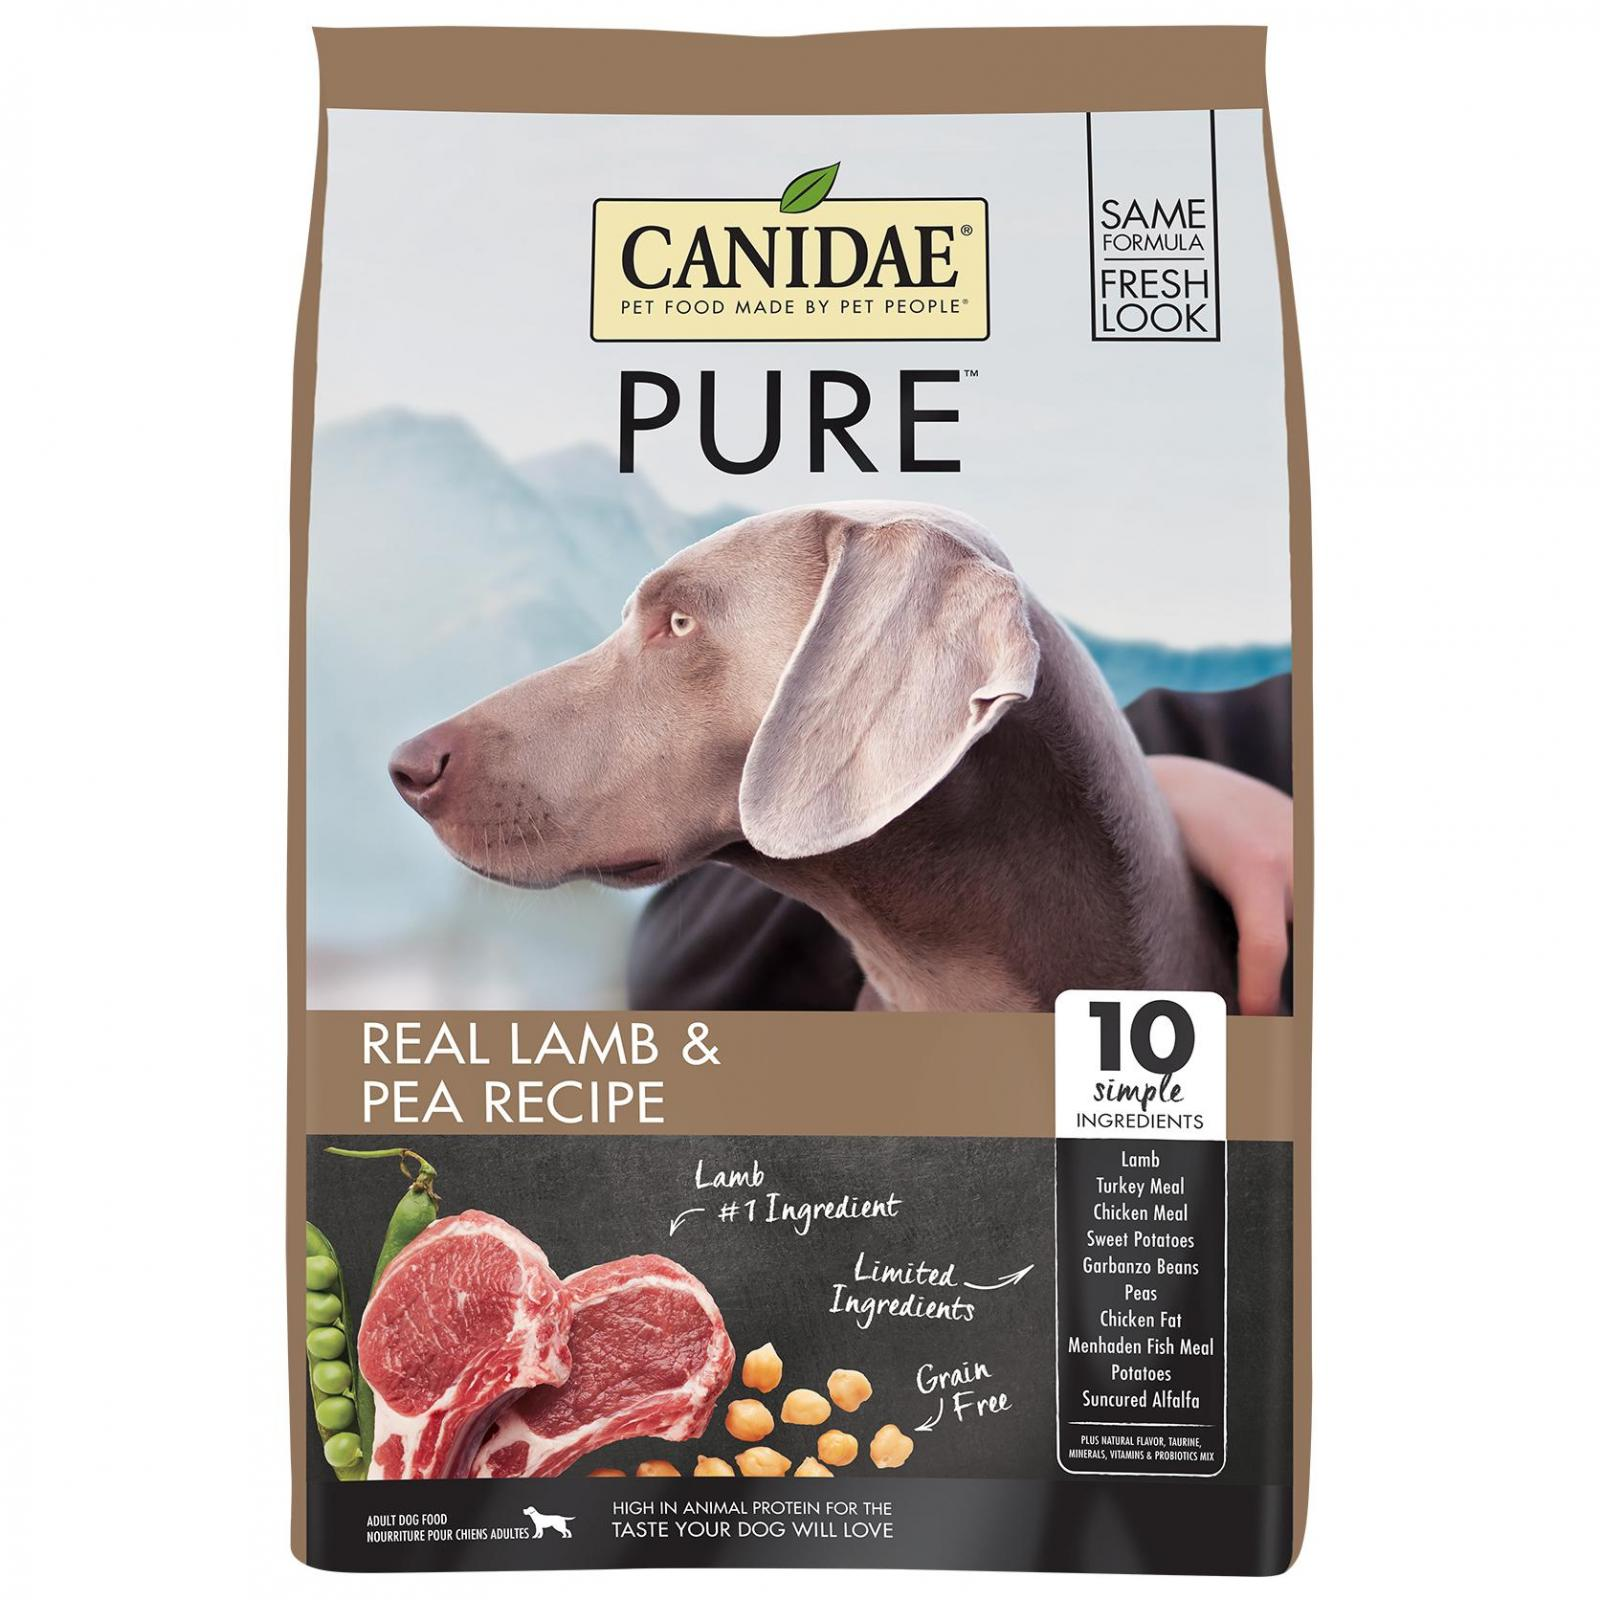 Canidae Canidae PURE Elements Grain Free Lamb Dry Dog Food